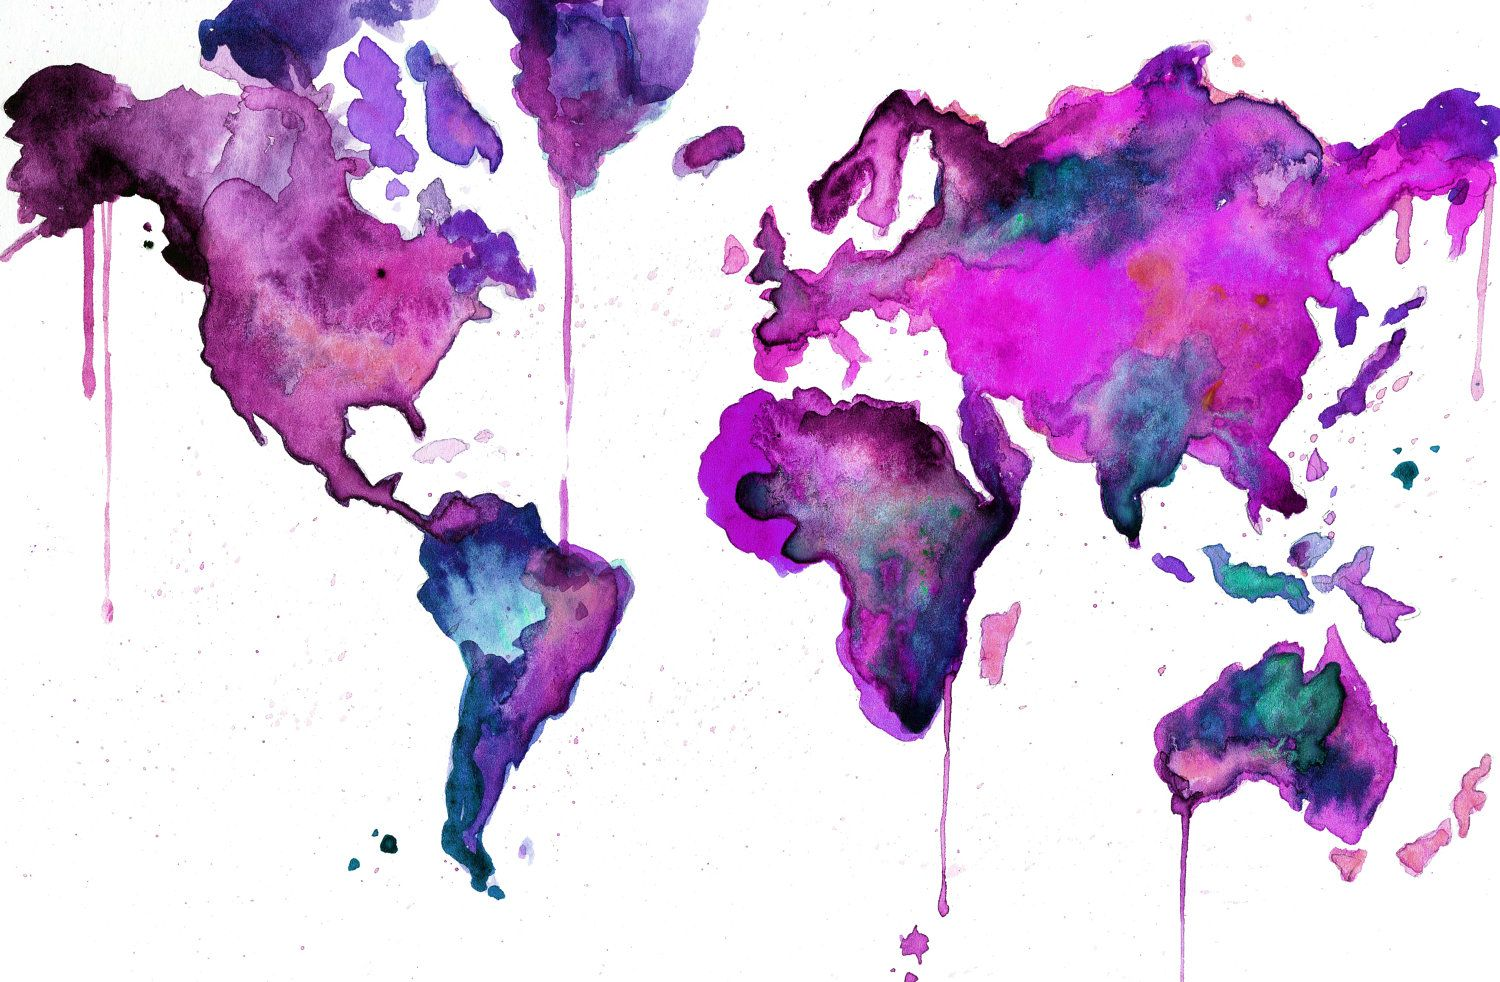 Watercolor map illustration world map no 8 2500 via etsy items similar to watercolor map illustration world map no 8 on etsy gumiabroncs Image collections